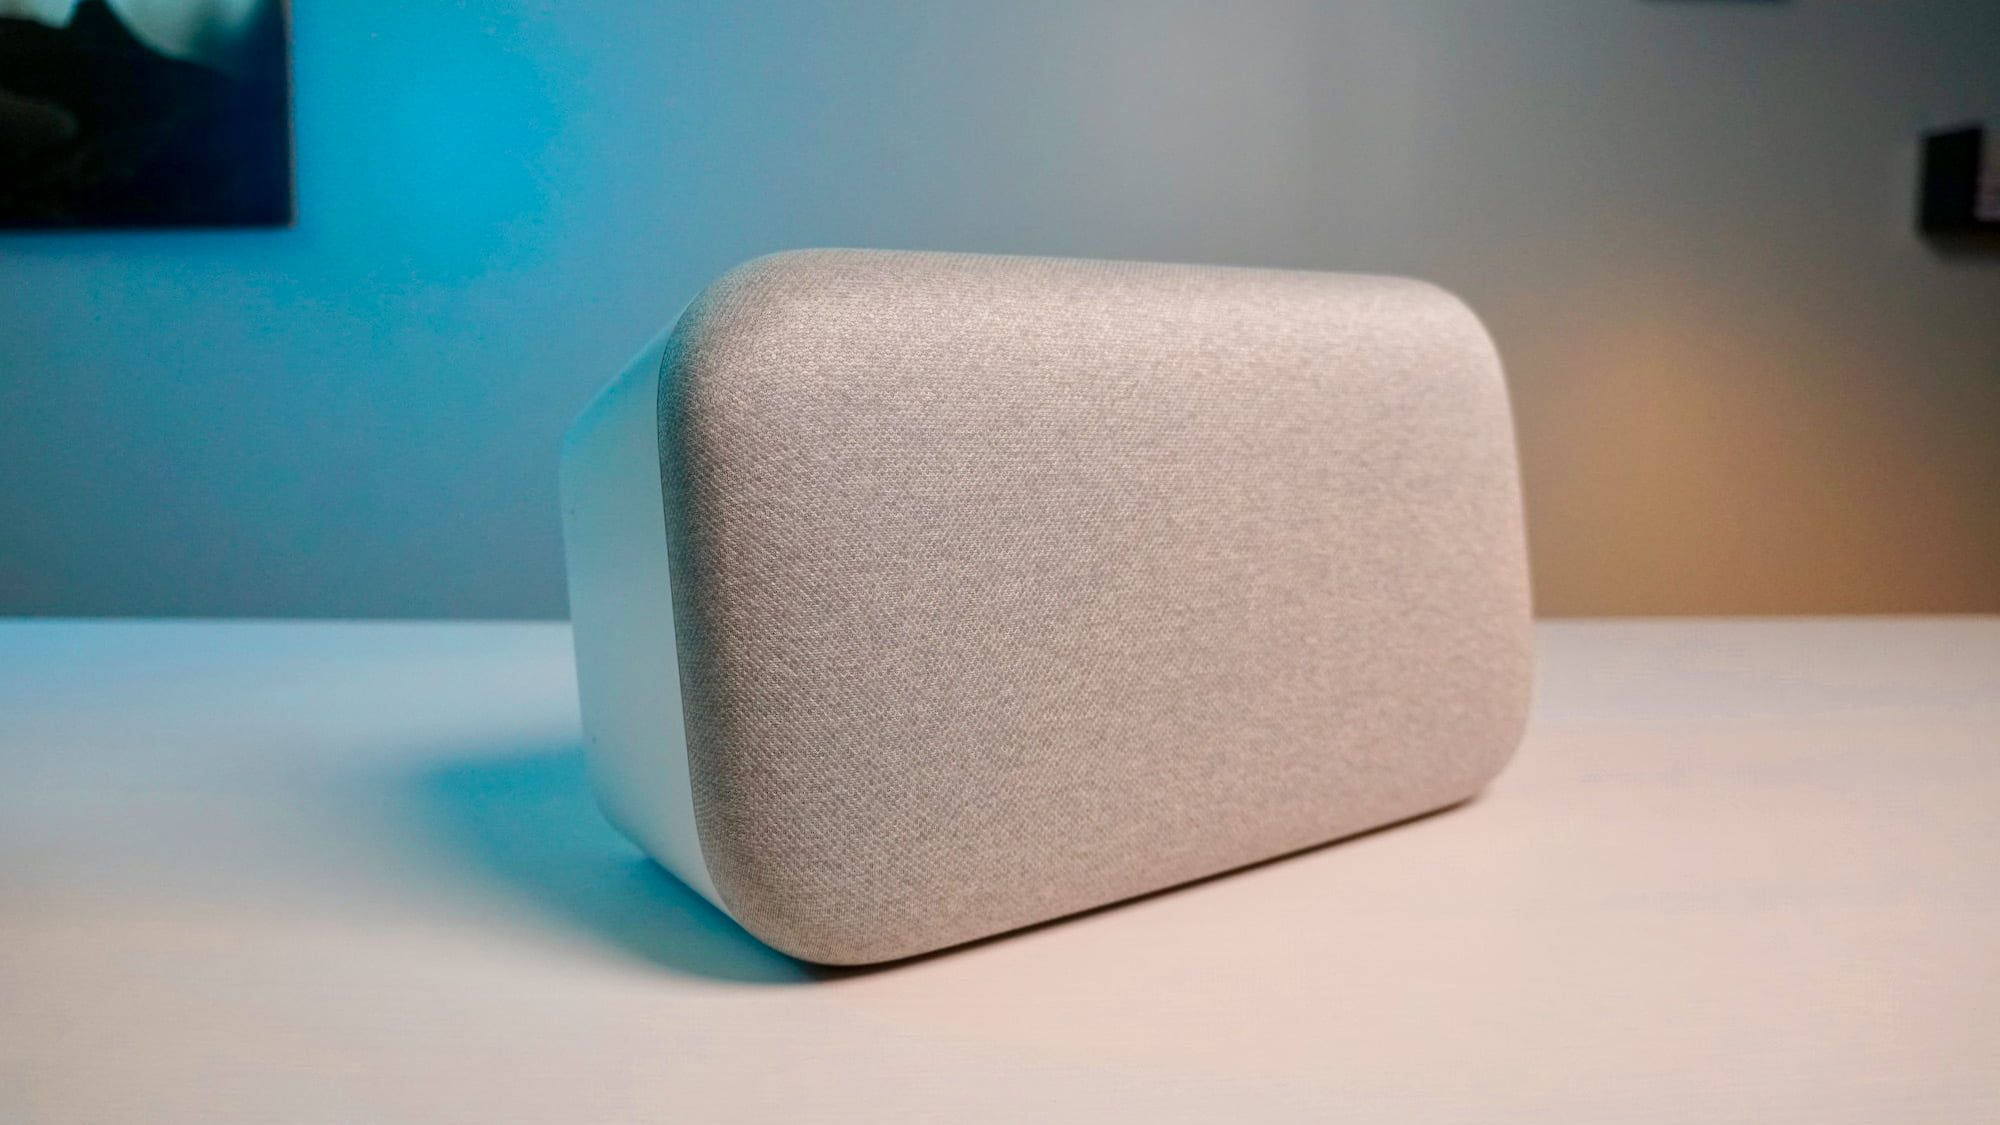 Two years later, the Google Home Max is still worth your money